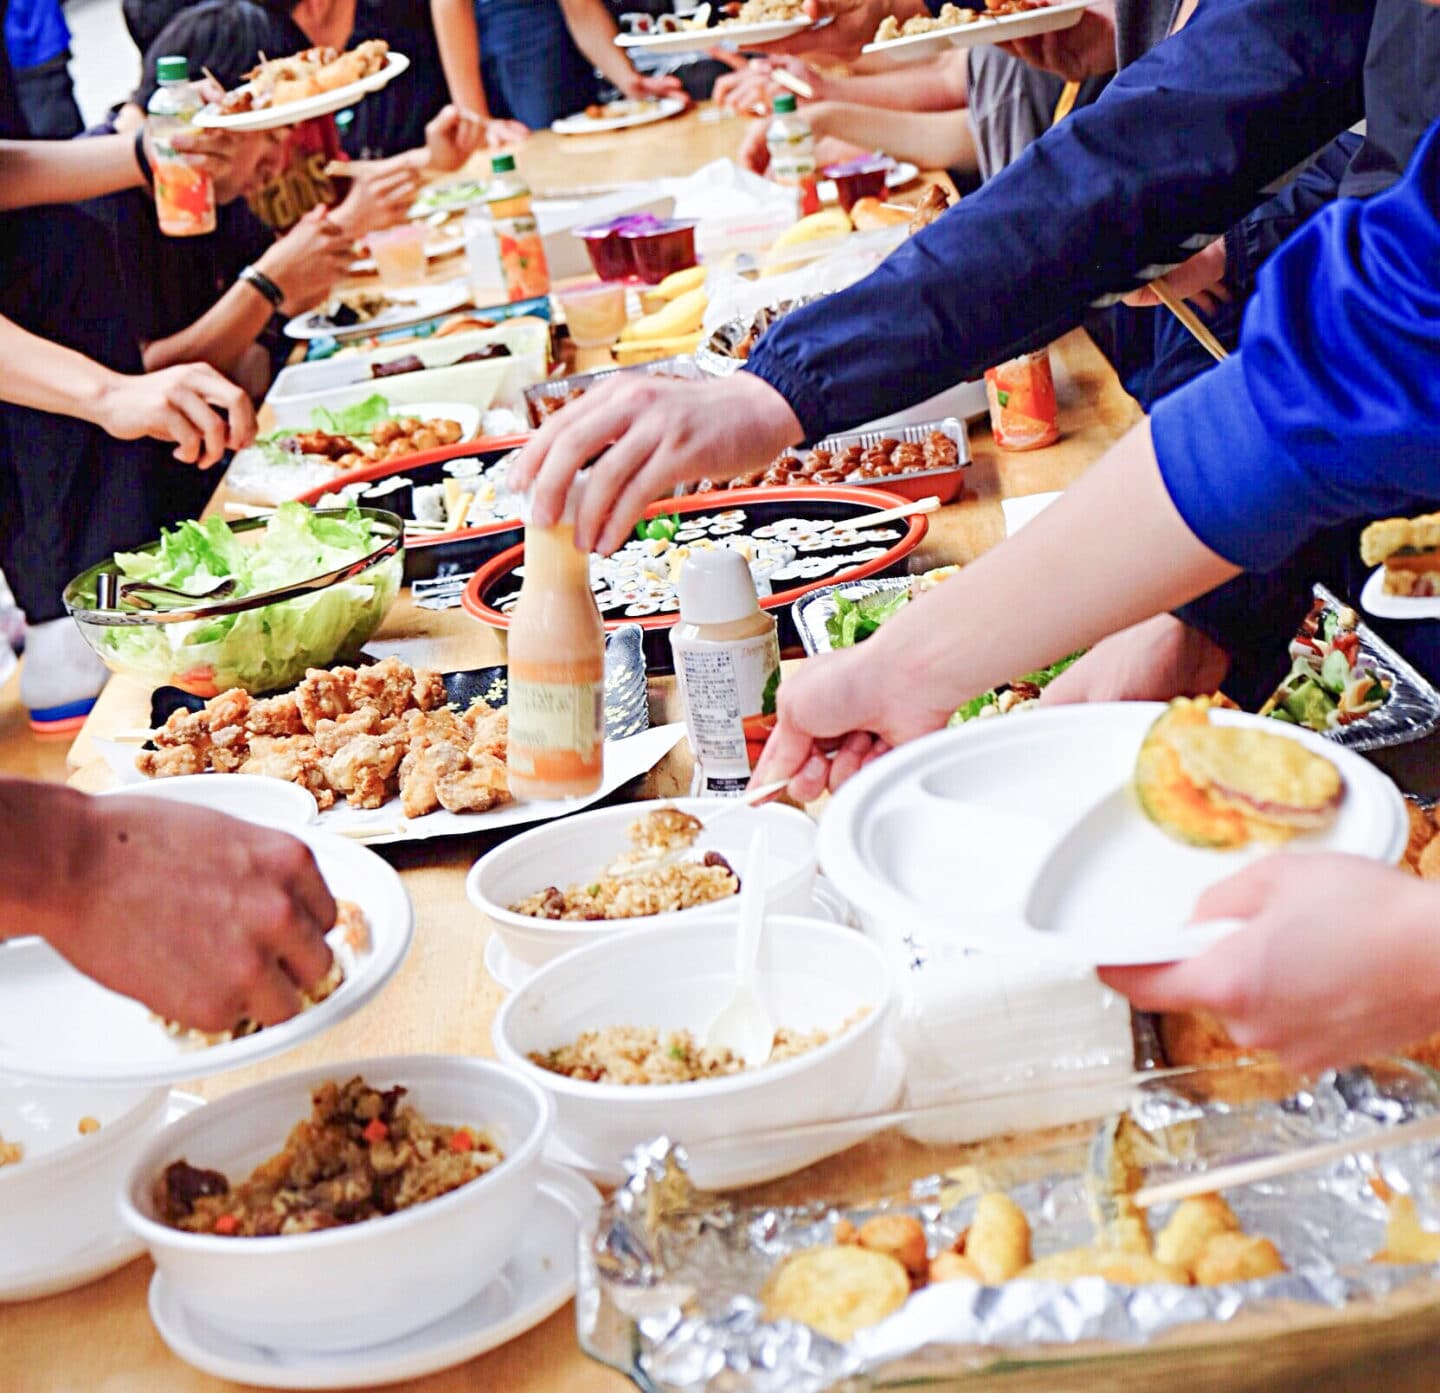 A potluck is an AMAZING idea for any and all events - it helps keep costs low during parties